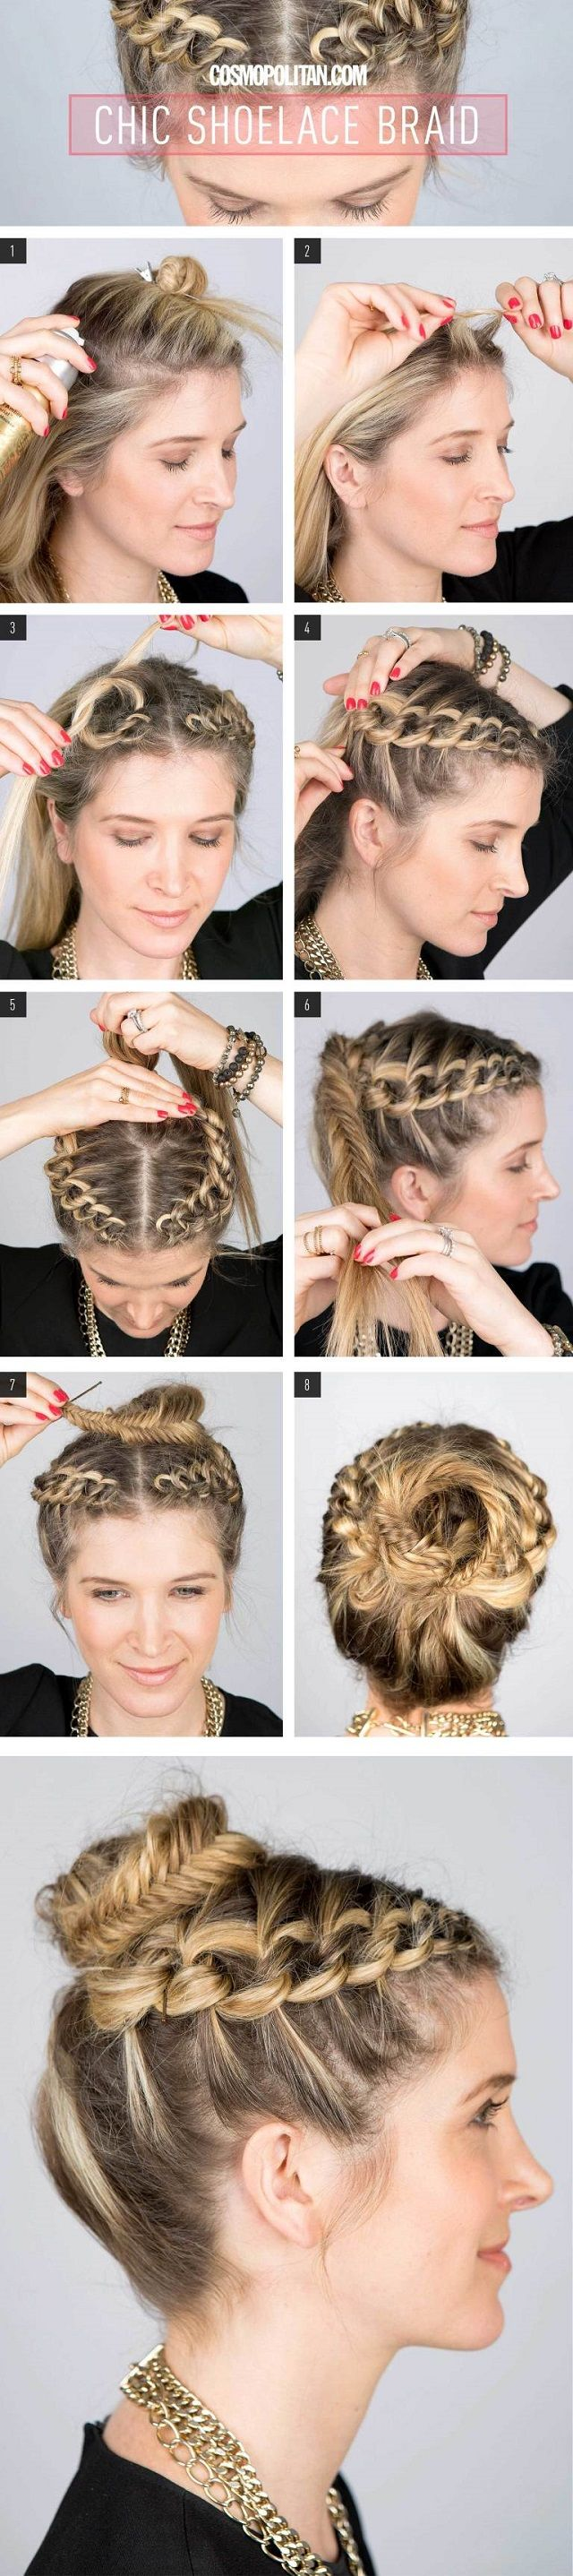 This Shoelace Braid Hairstyle is very cute. Tis is a 10 minutes hairstyle after you have learned and understood the steps you need to follow.